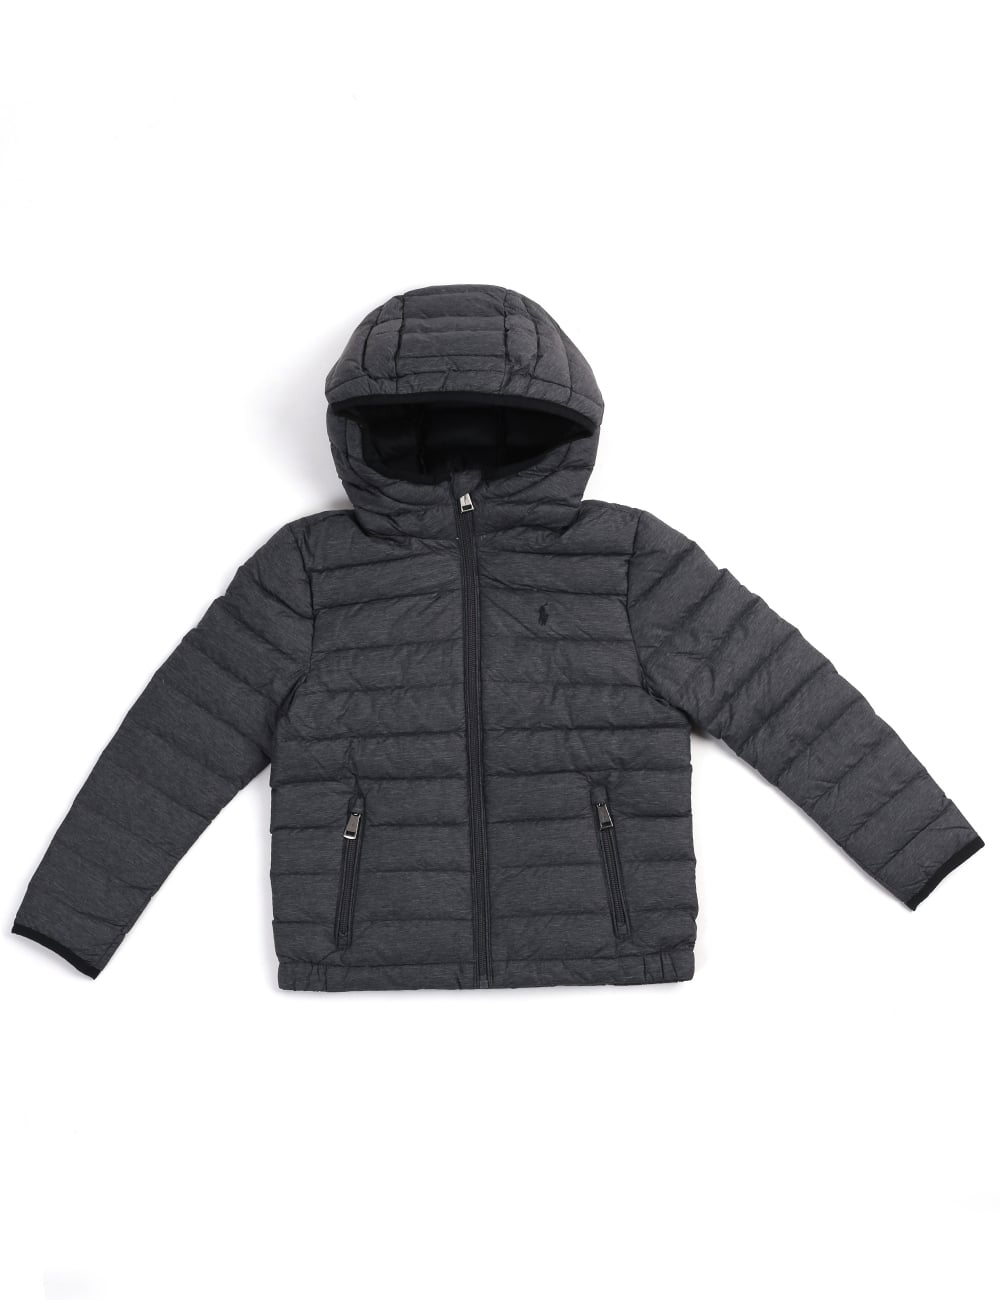 4994a9e61 Polo Ralph Lauren Boys Packable Jacket